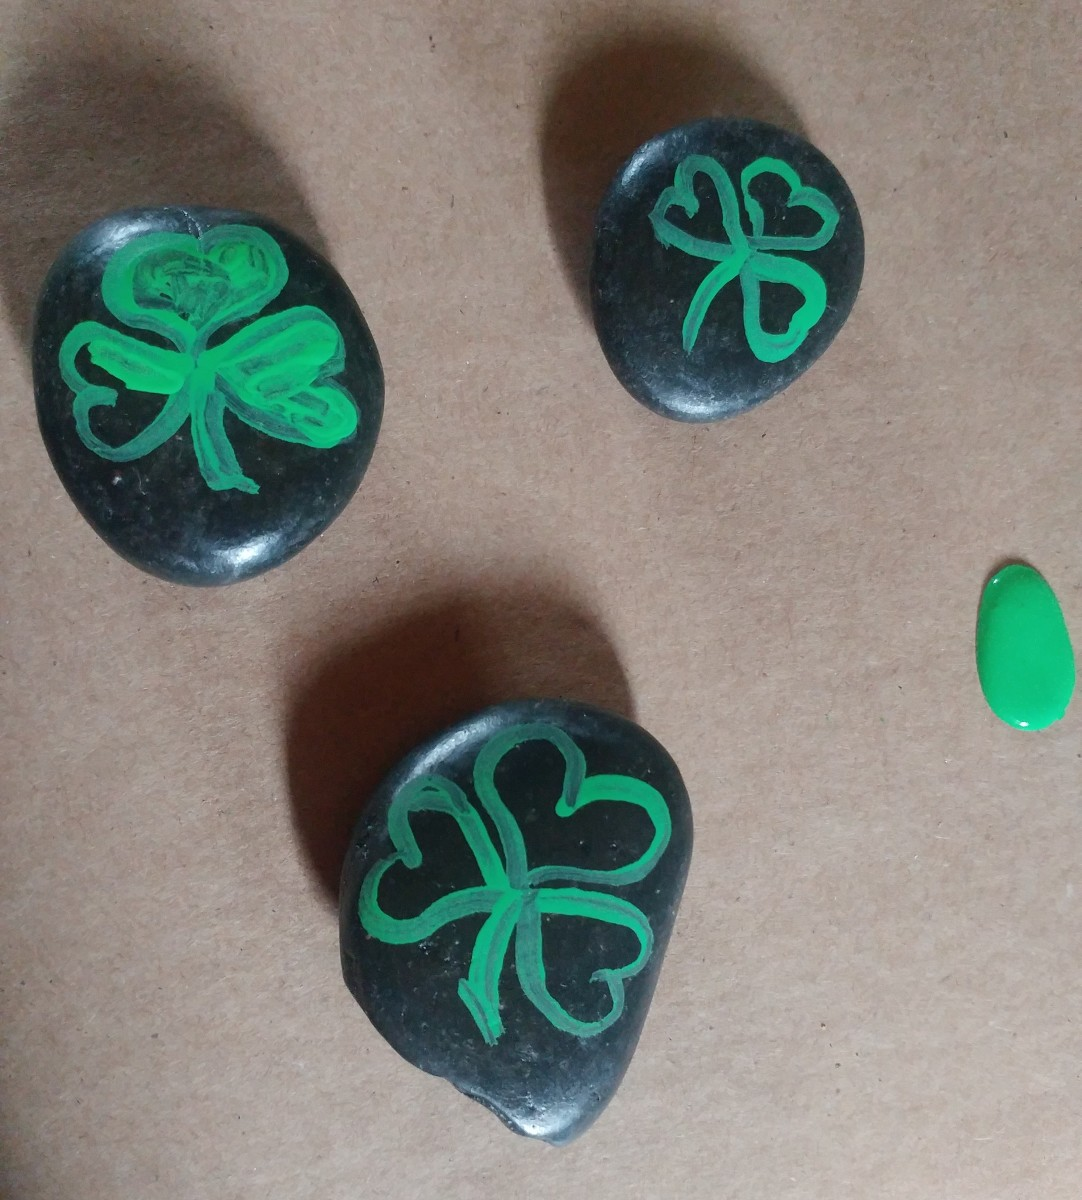 Paint the shamrocks solid.